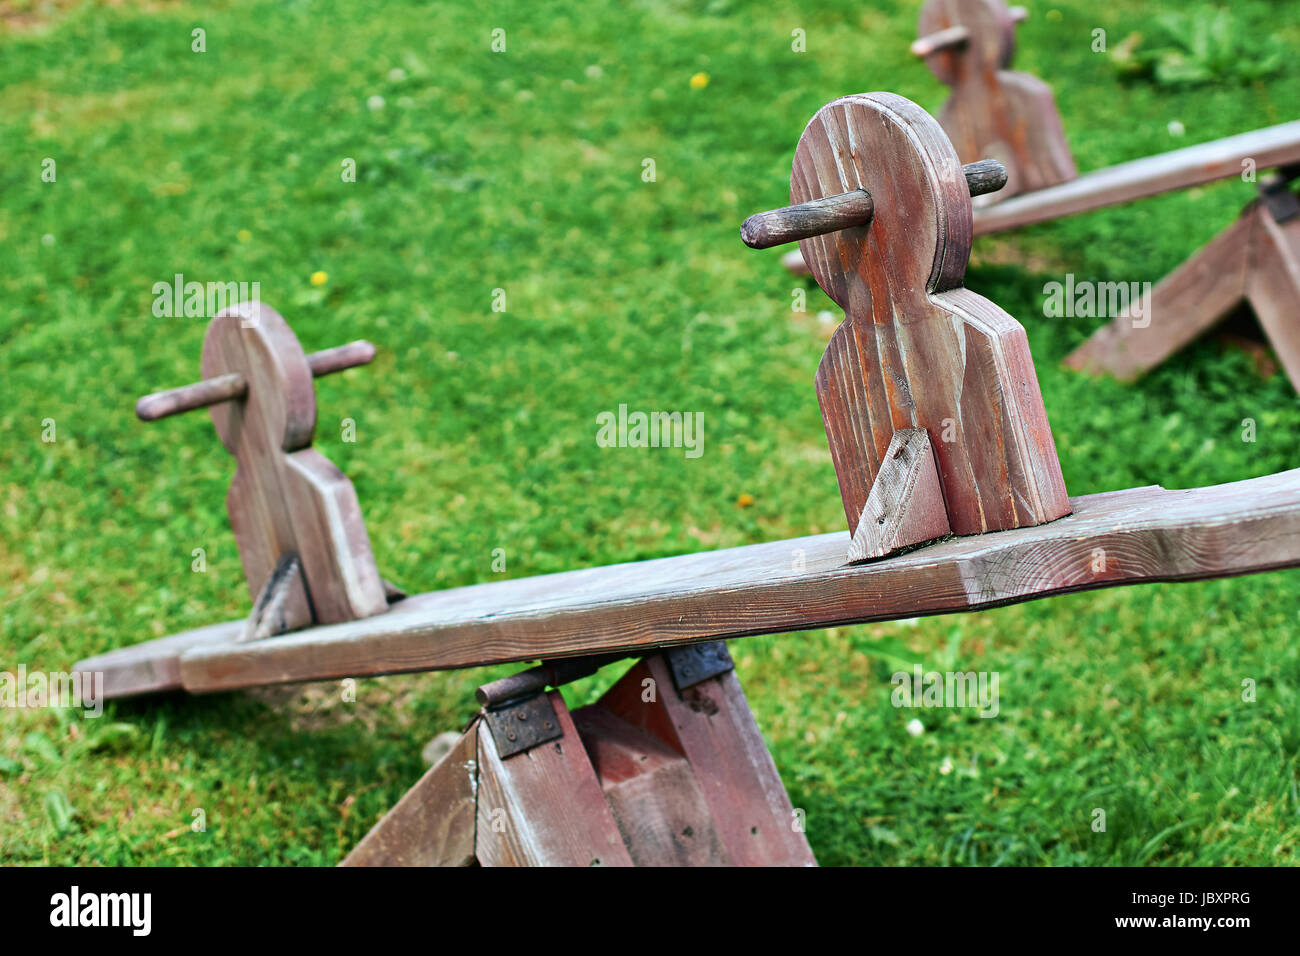 Wooden equipment on kinds playground - Stock Image